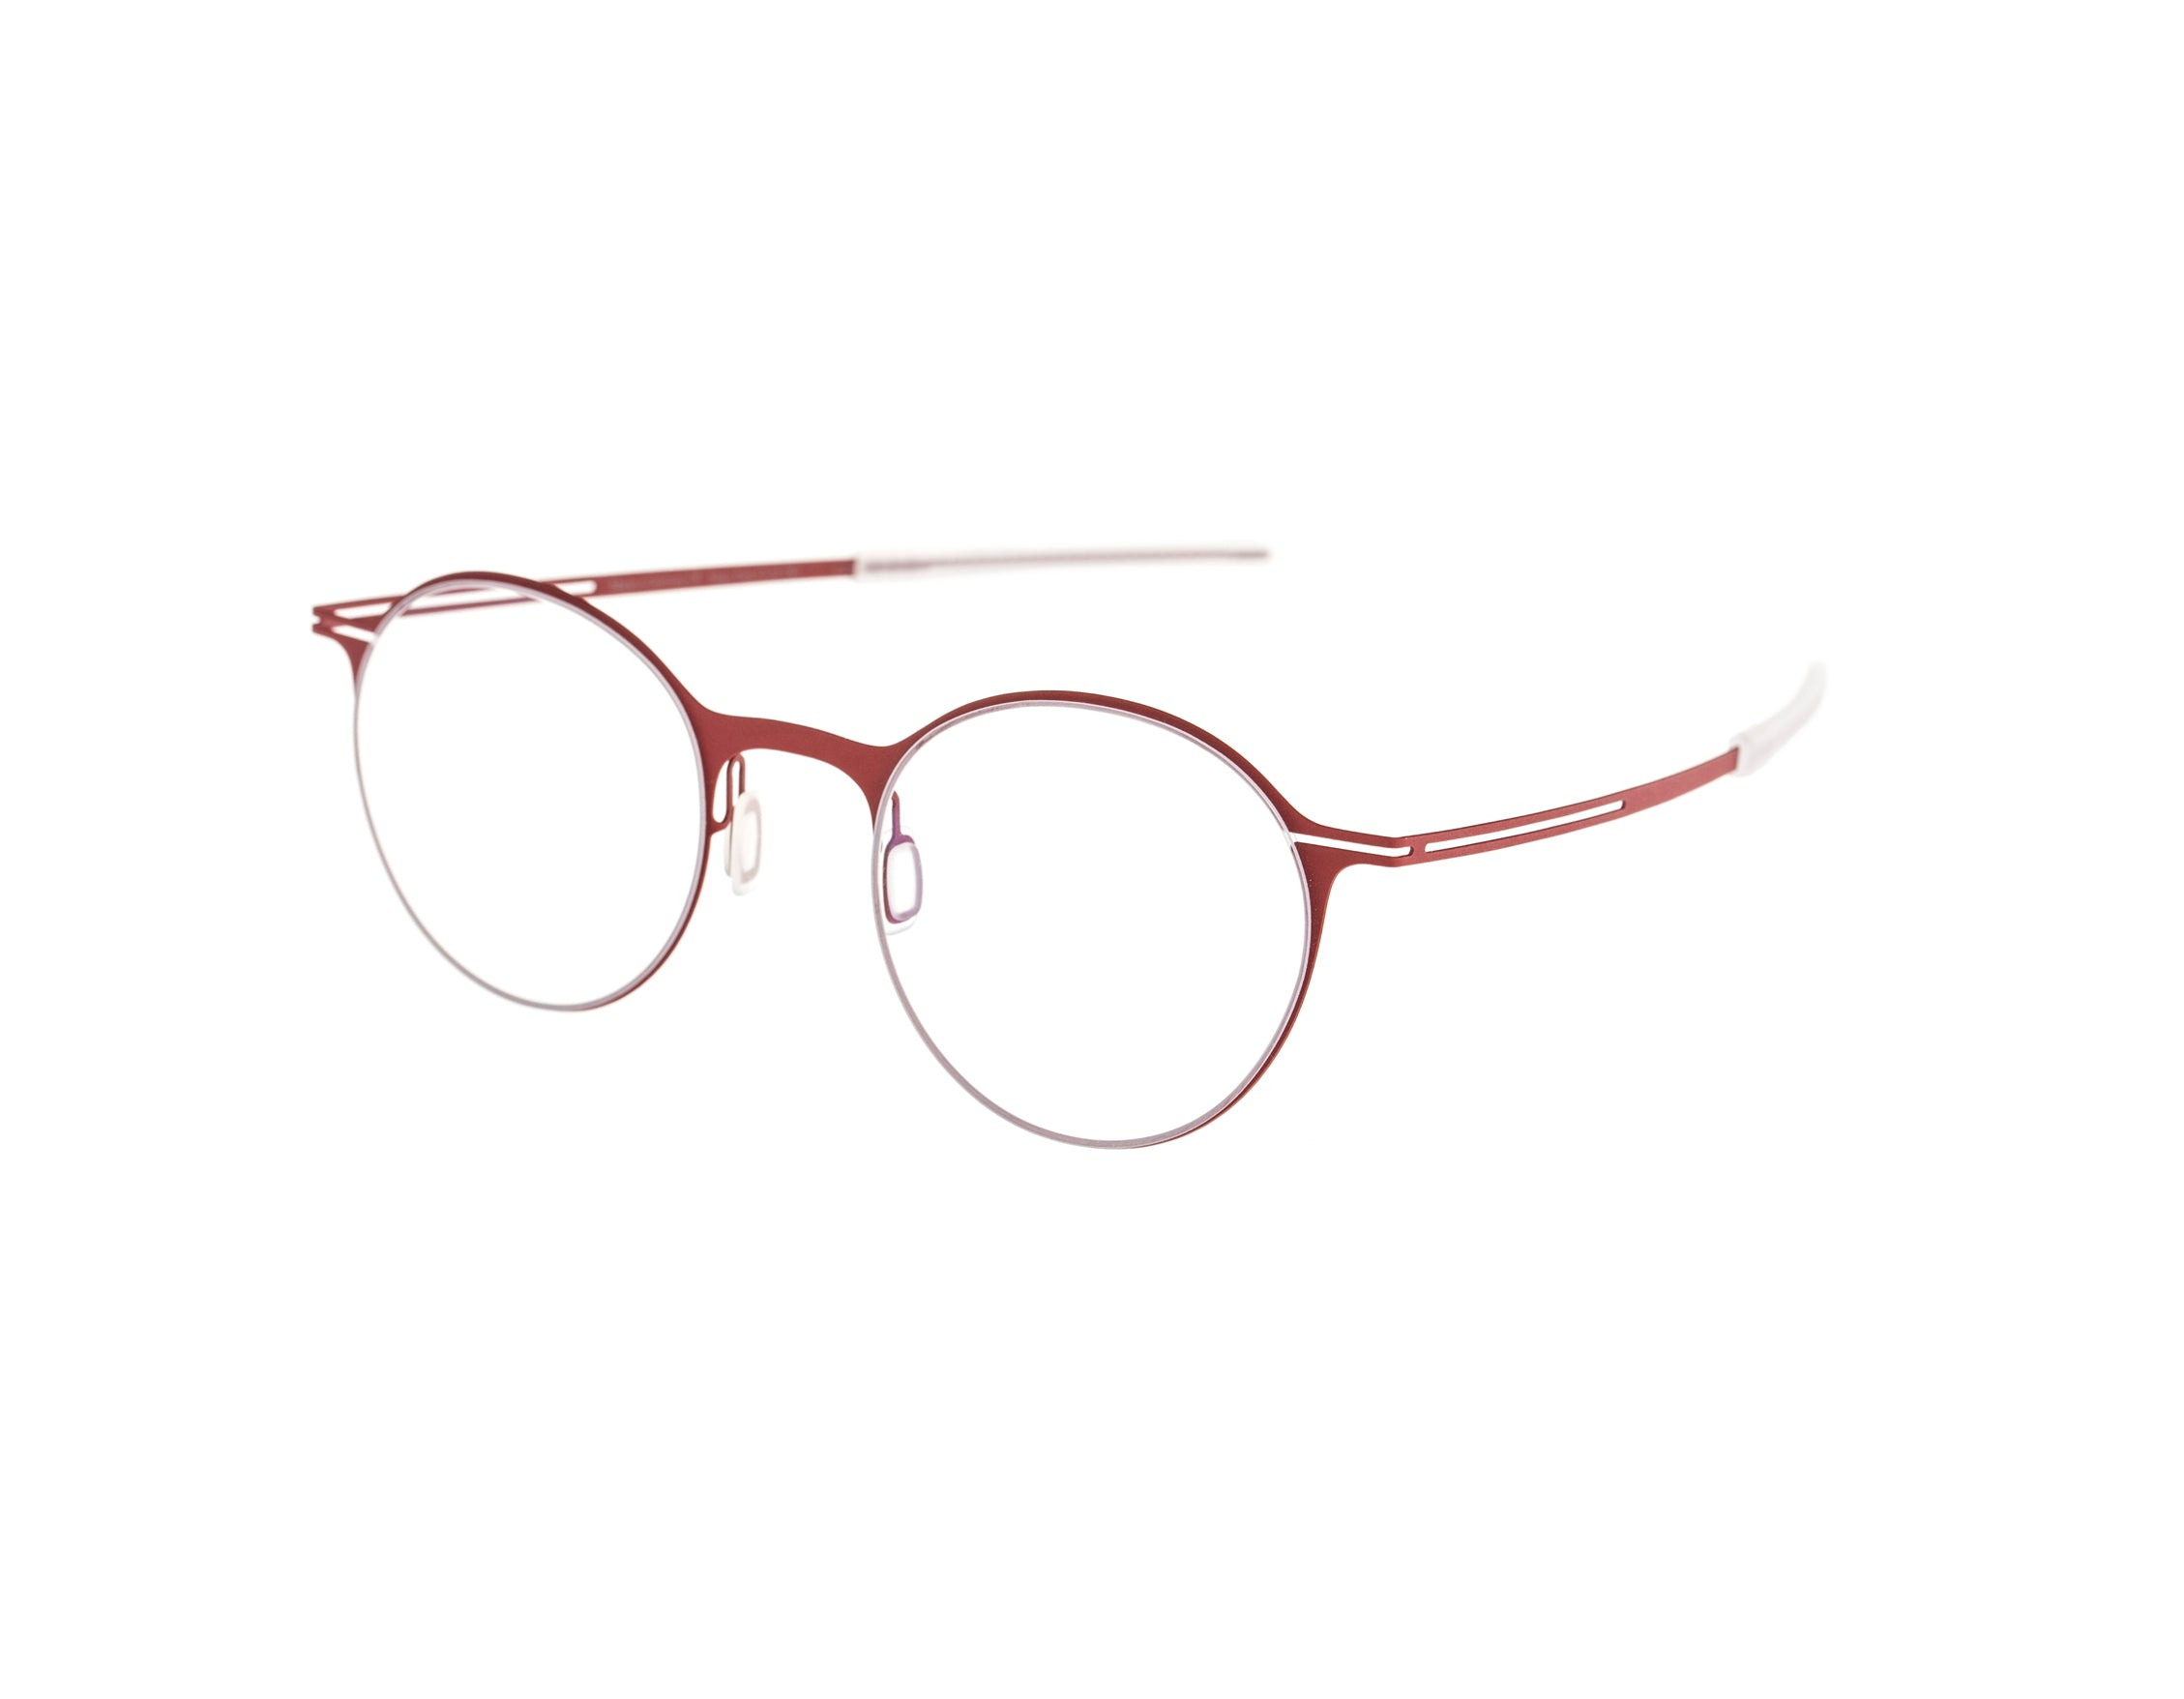 ONE by Thomsen Eyewear -  New York col. 07